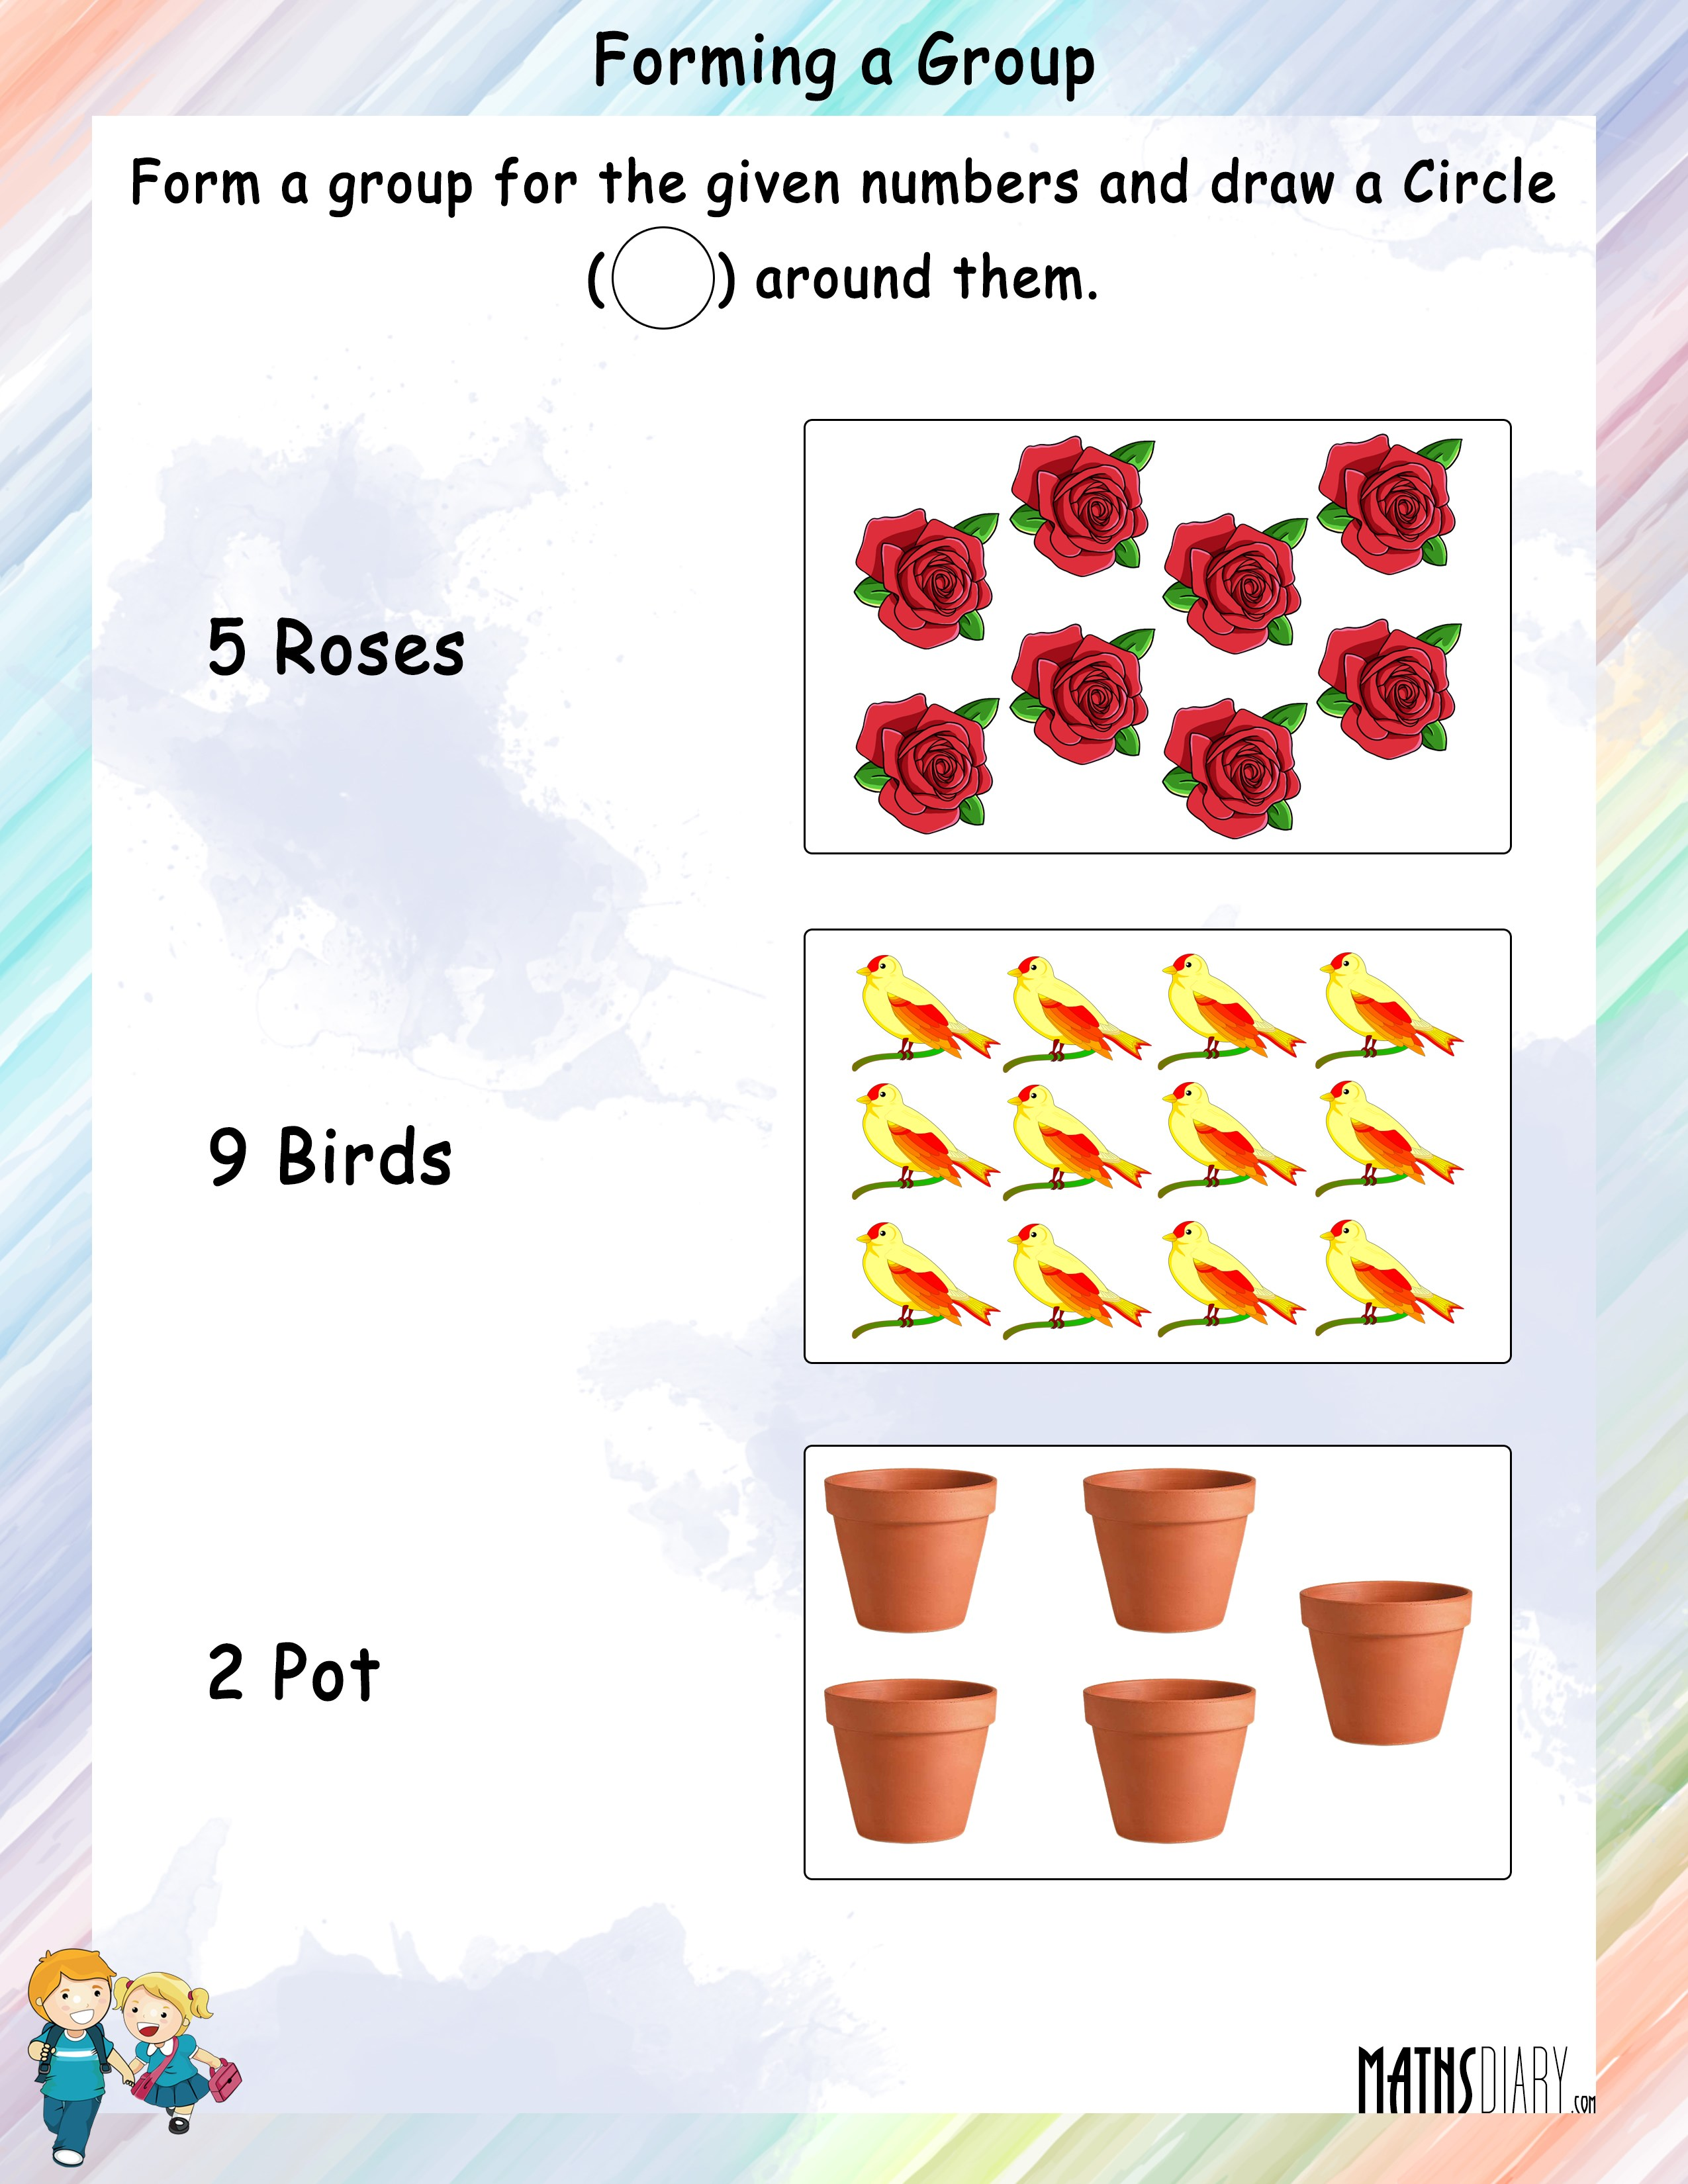 Forming A Group For Given Numbers Worksheets